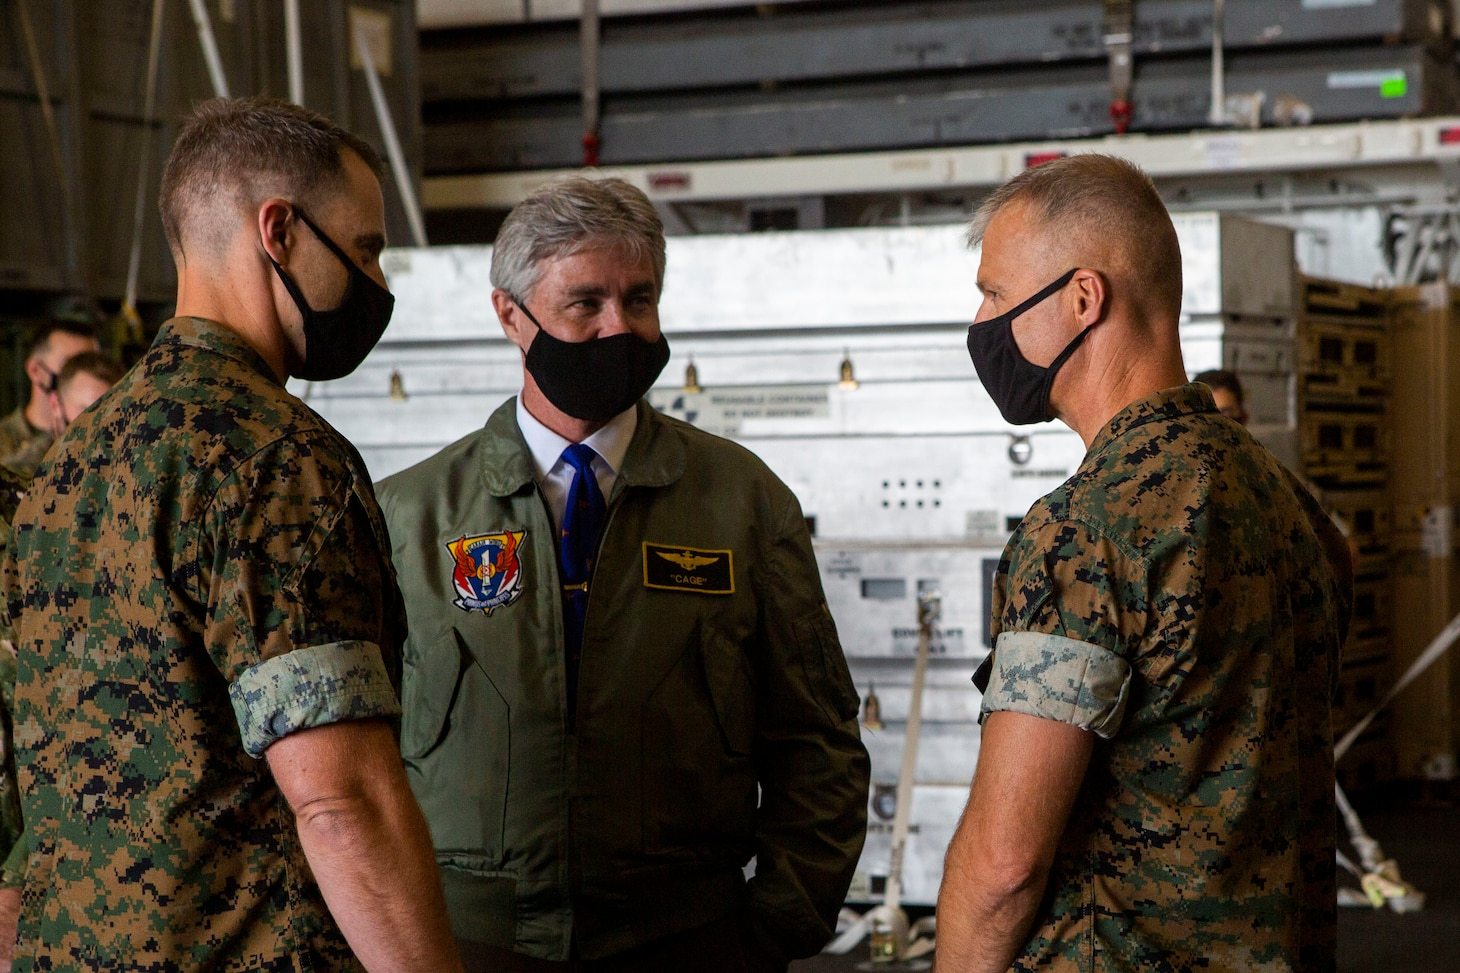 Secretary of the Navy (SECNAV) Kenneth J. Braithwaite speaks with U.S. Marine Corps Col. Christopher Bronzi, commanding officer of the 15th Marine Expeditionary Unit, right, and Maj. Daniel Davis, intelligence officer with the 15th MEU, during his visit to the amphibious assault ship USS Makin Island (LHD 8) in the eastern Pacific.